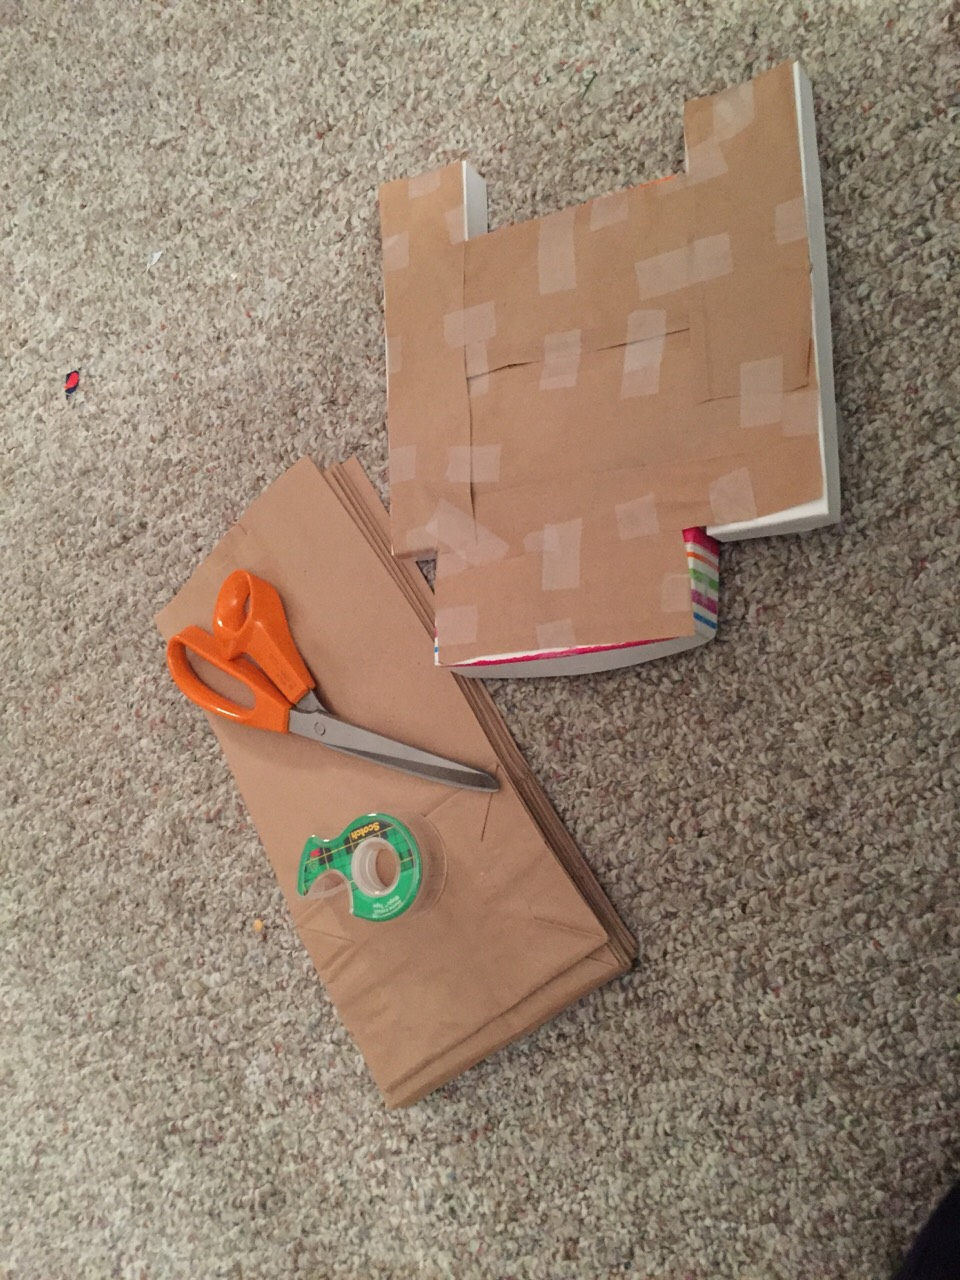 Cover the bottom of the platform with paper bags